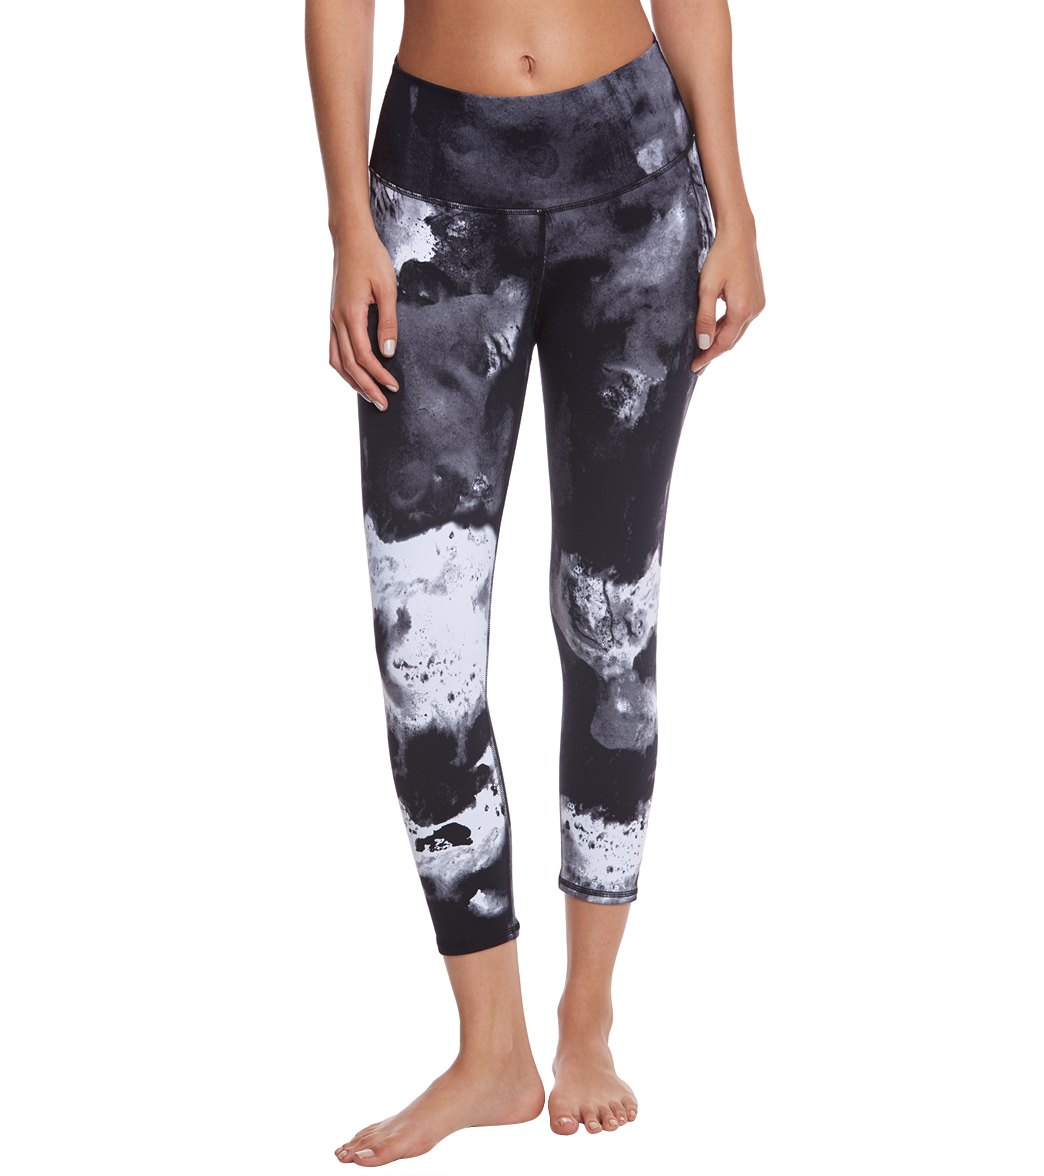 Alo Yoga Printed High Waist Airbrush Yoga Capris at YogaOutlet.com ...